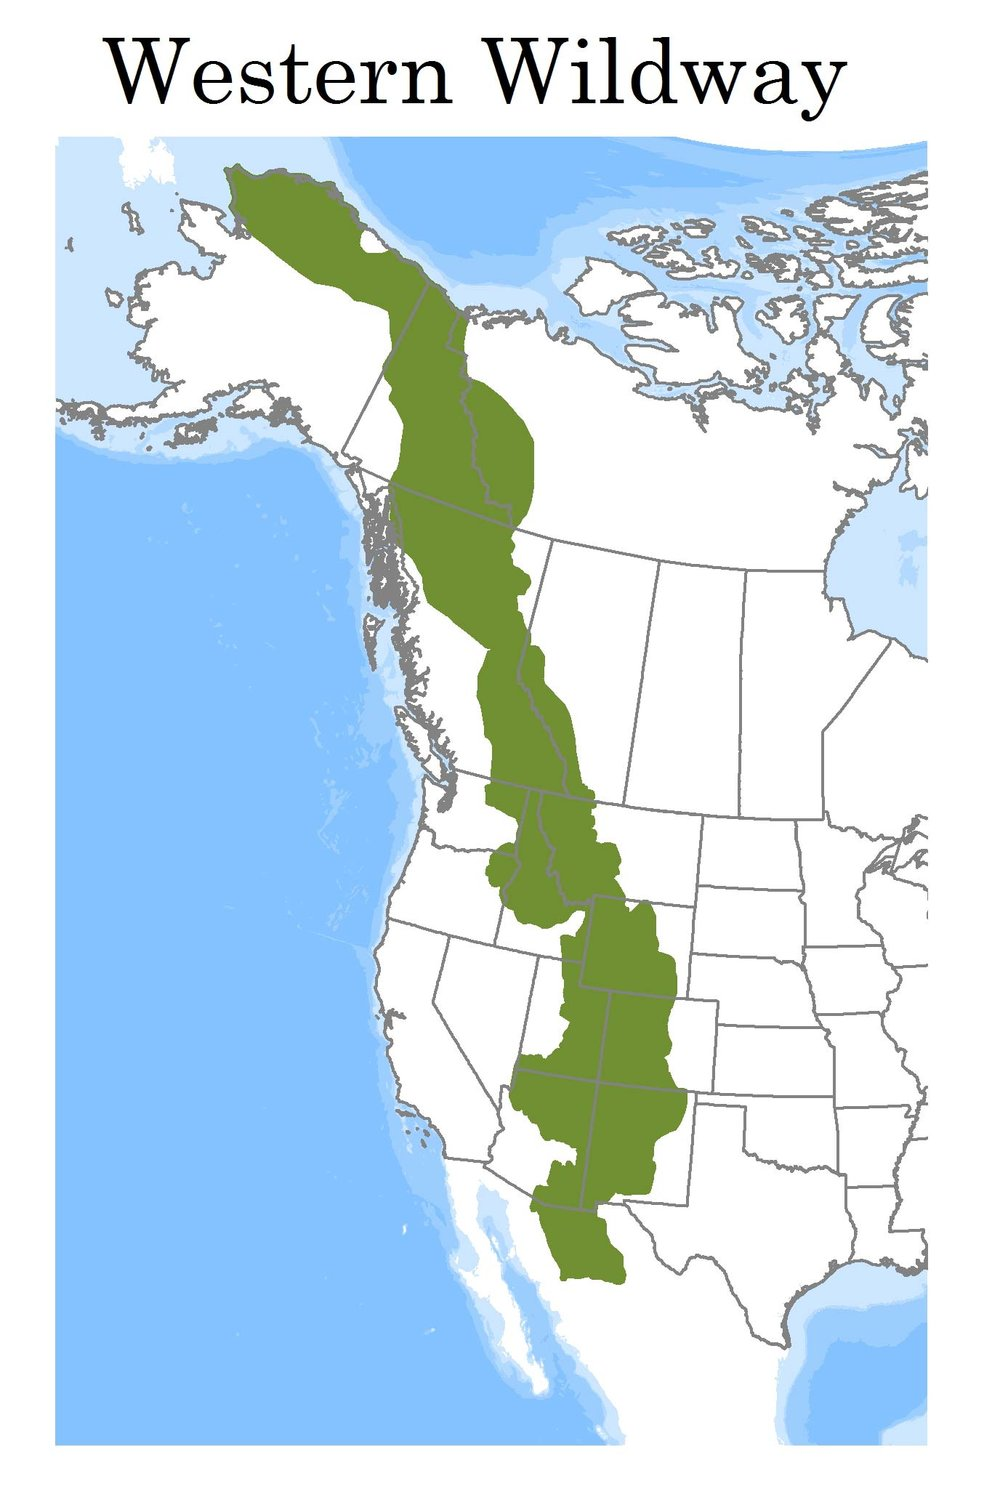 Western Wildlway  -  Click to enlarge map and see the different Wildland Networks along the Wildway!